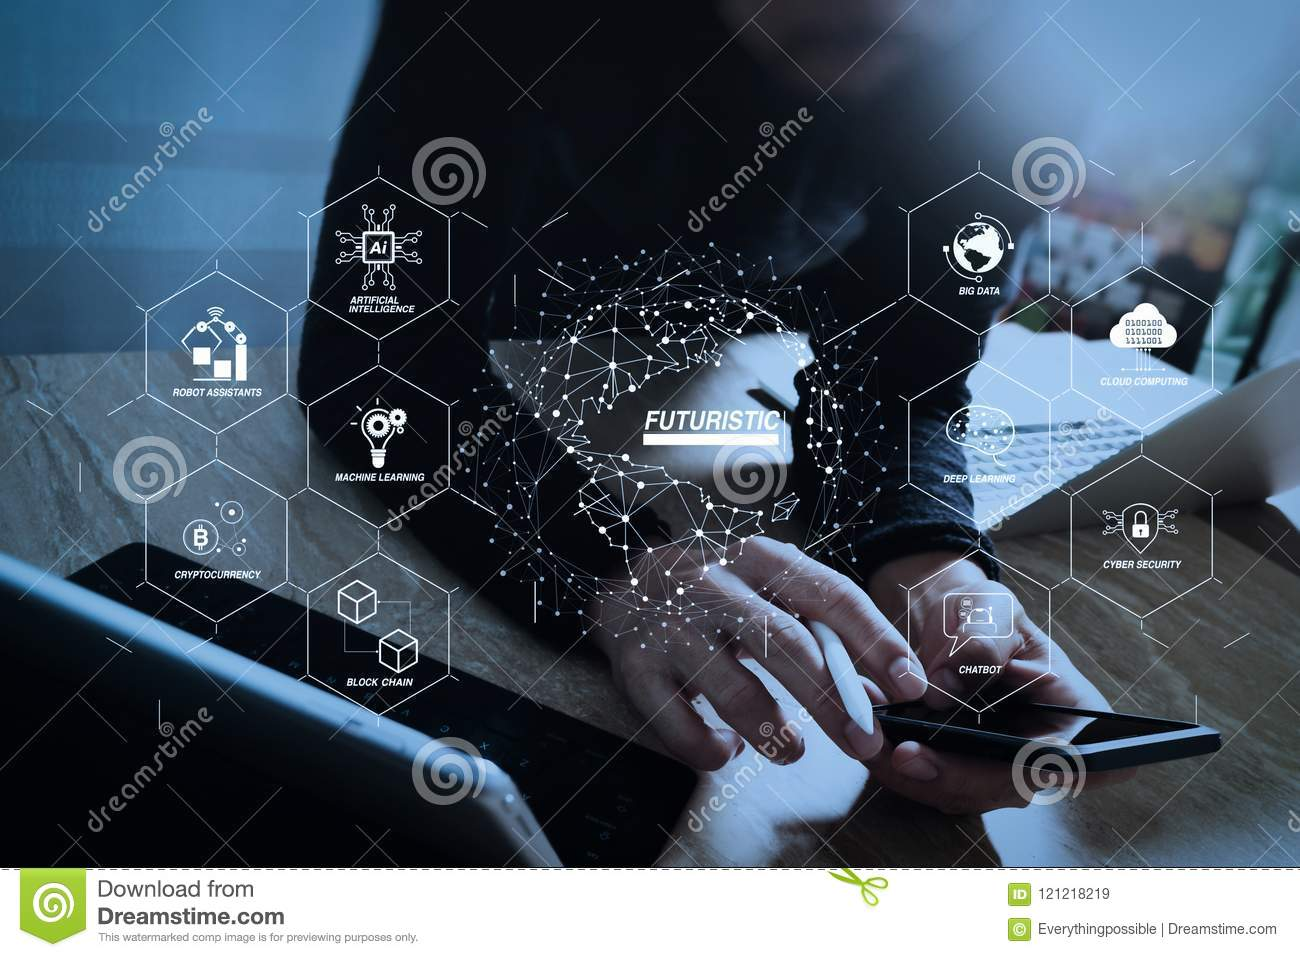 Designer using smart phone and keyboard dock digital tablet with futuristic in industry 40 and business virtual diagram with ai robot assistant cloud big data and automation designer using smart phone and keyboard ccuart Gallery